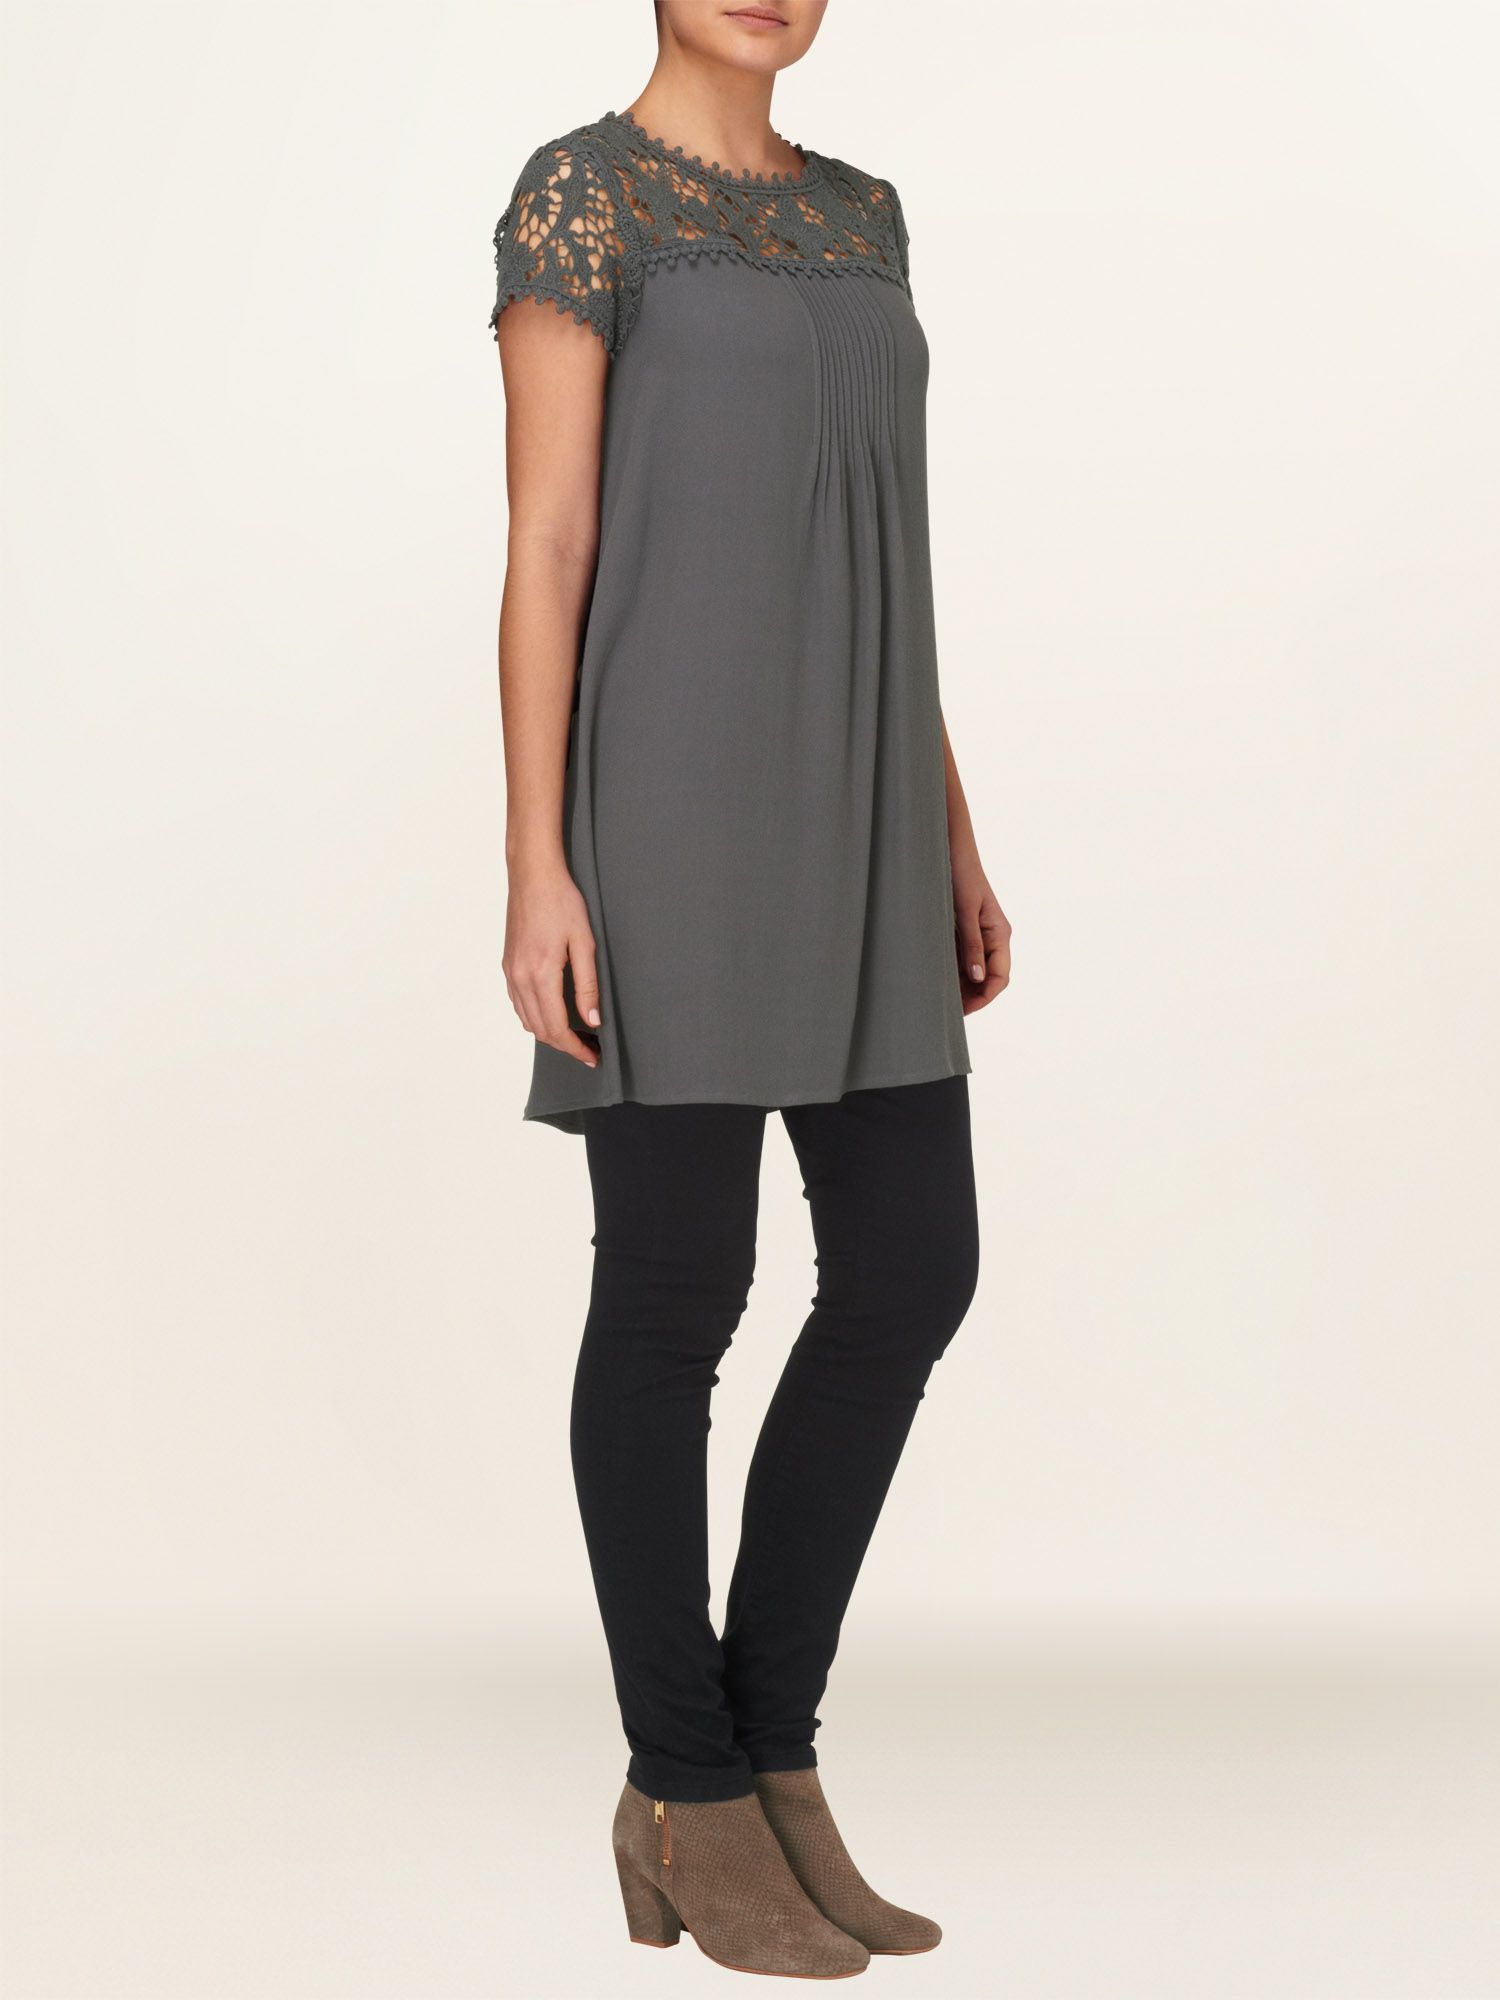 Gretchen lace sleeve tunic